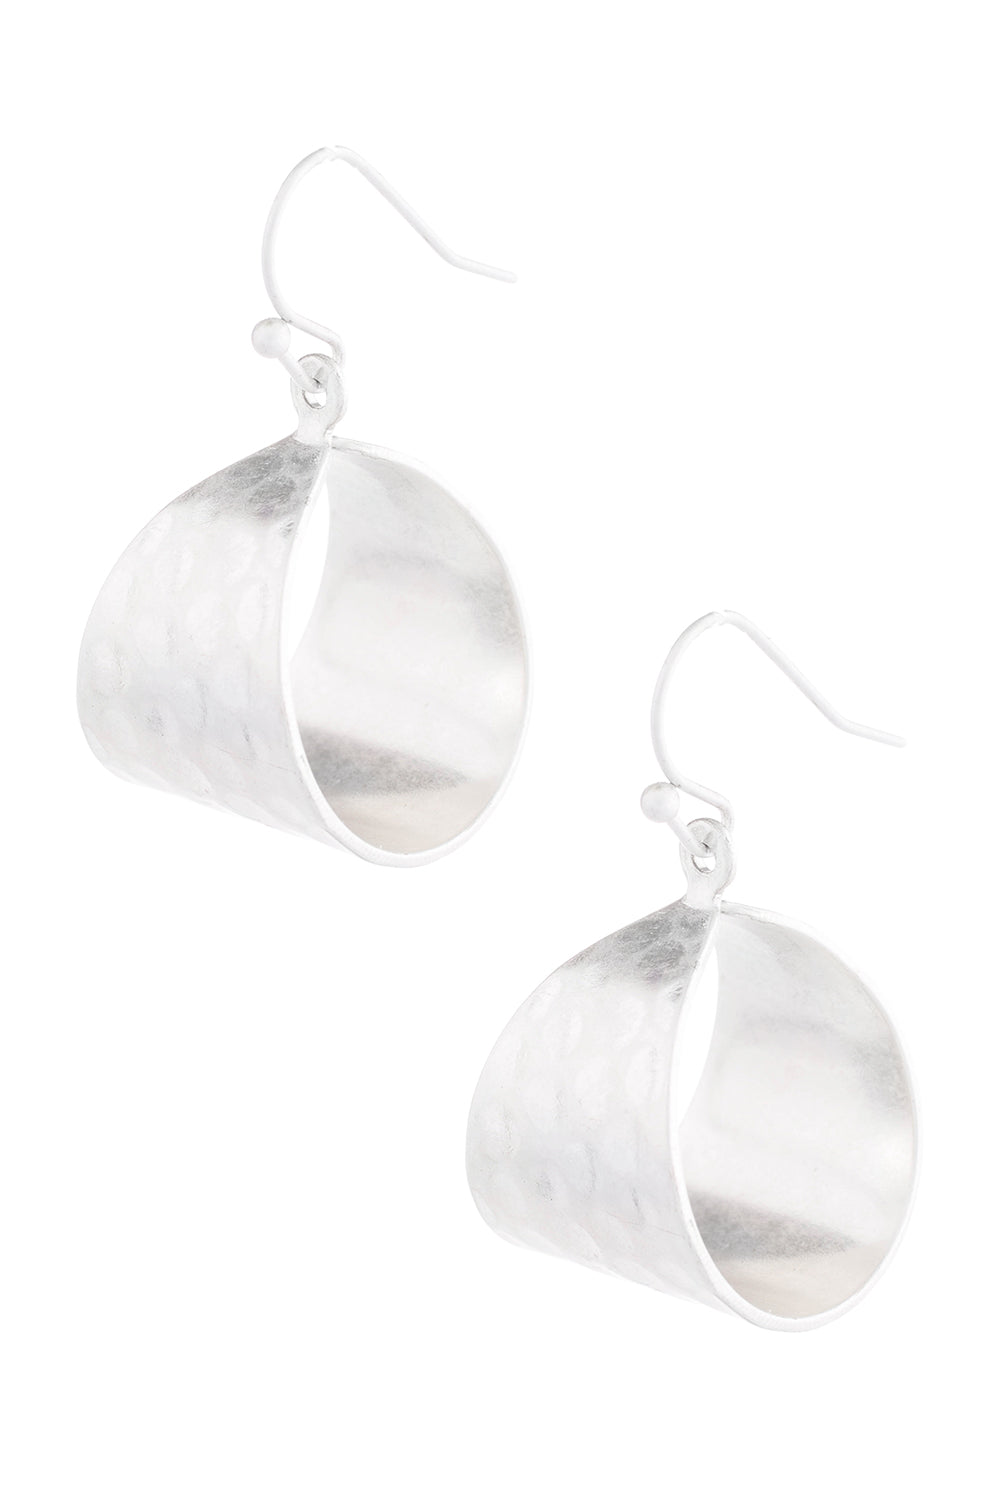 Type 2 Silky Silver Earrings